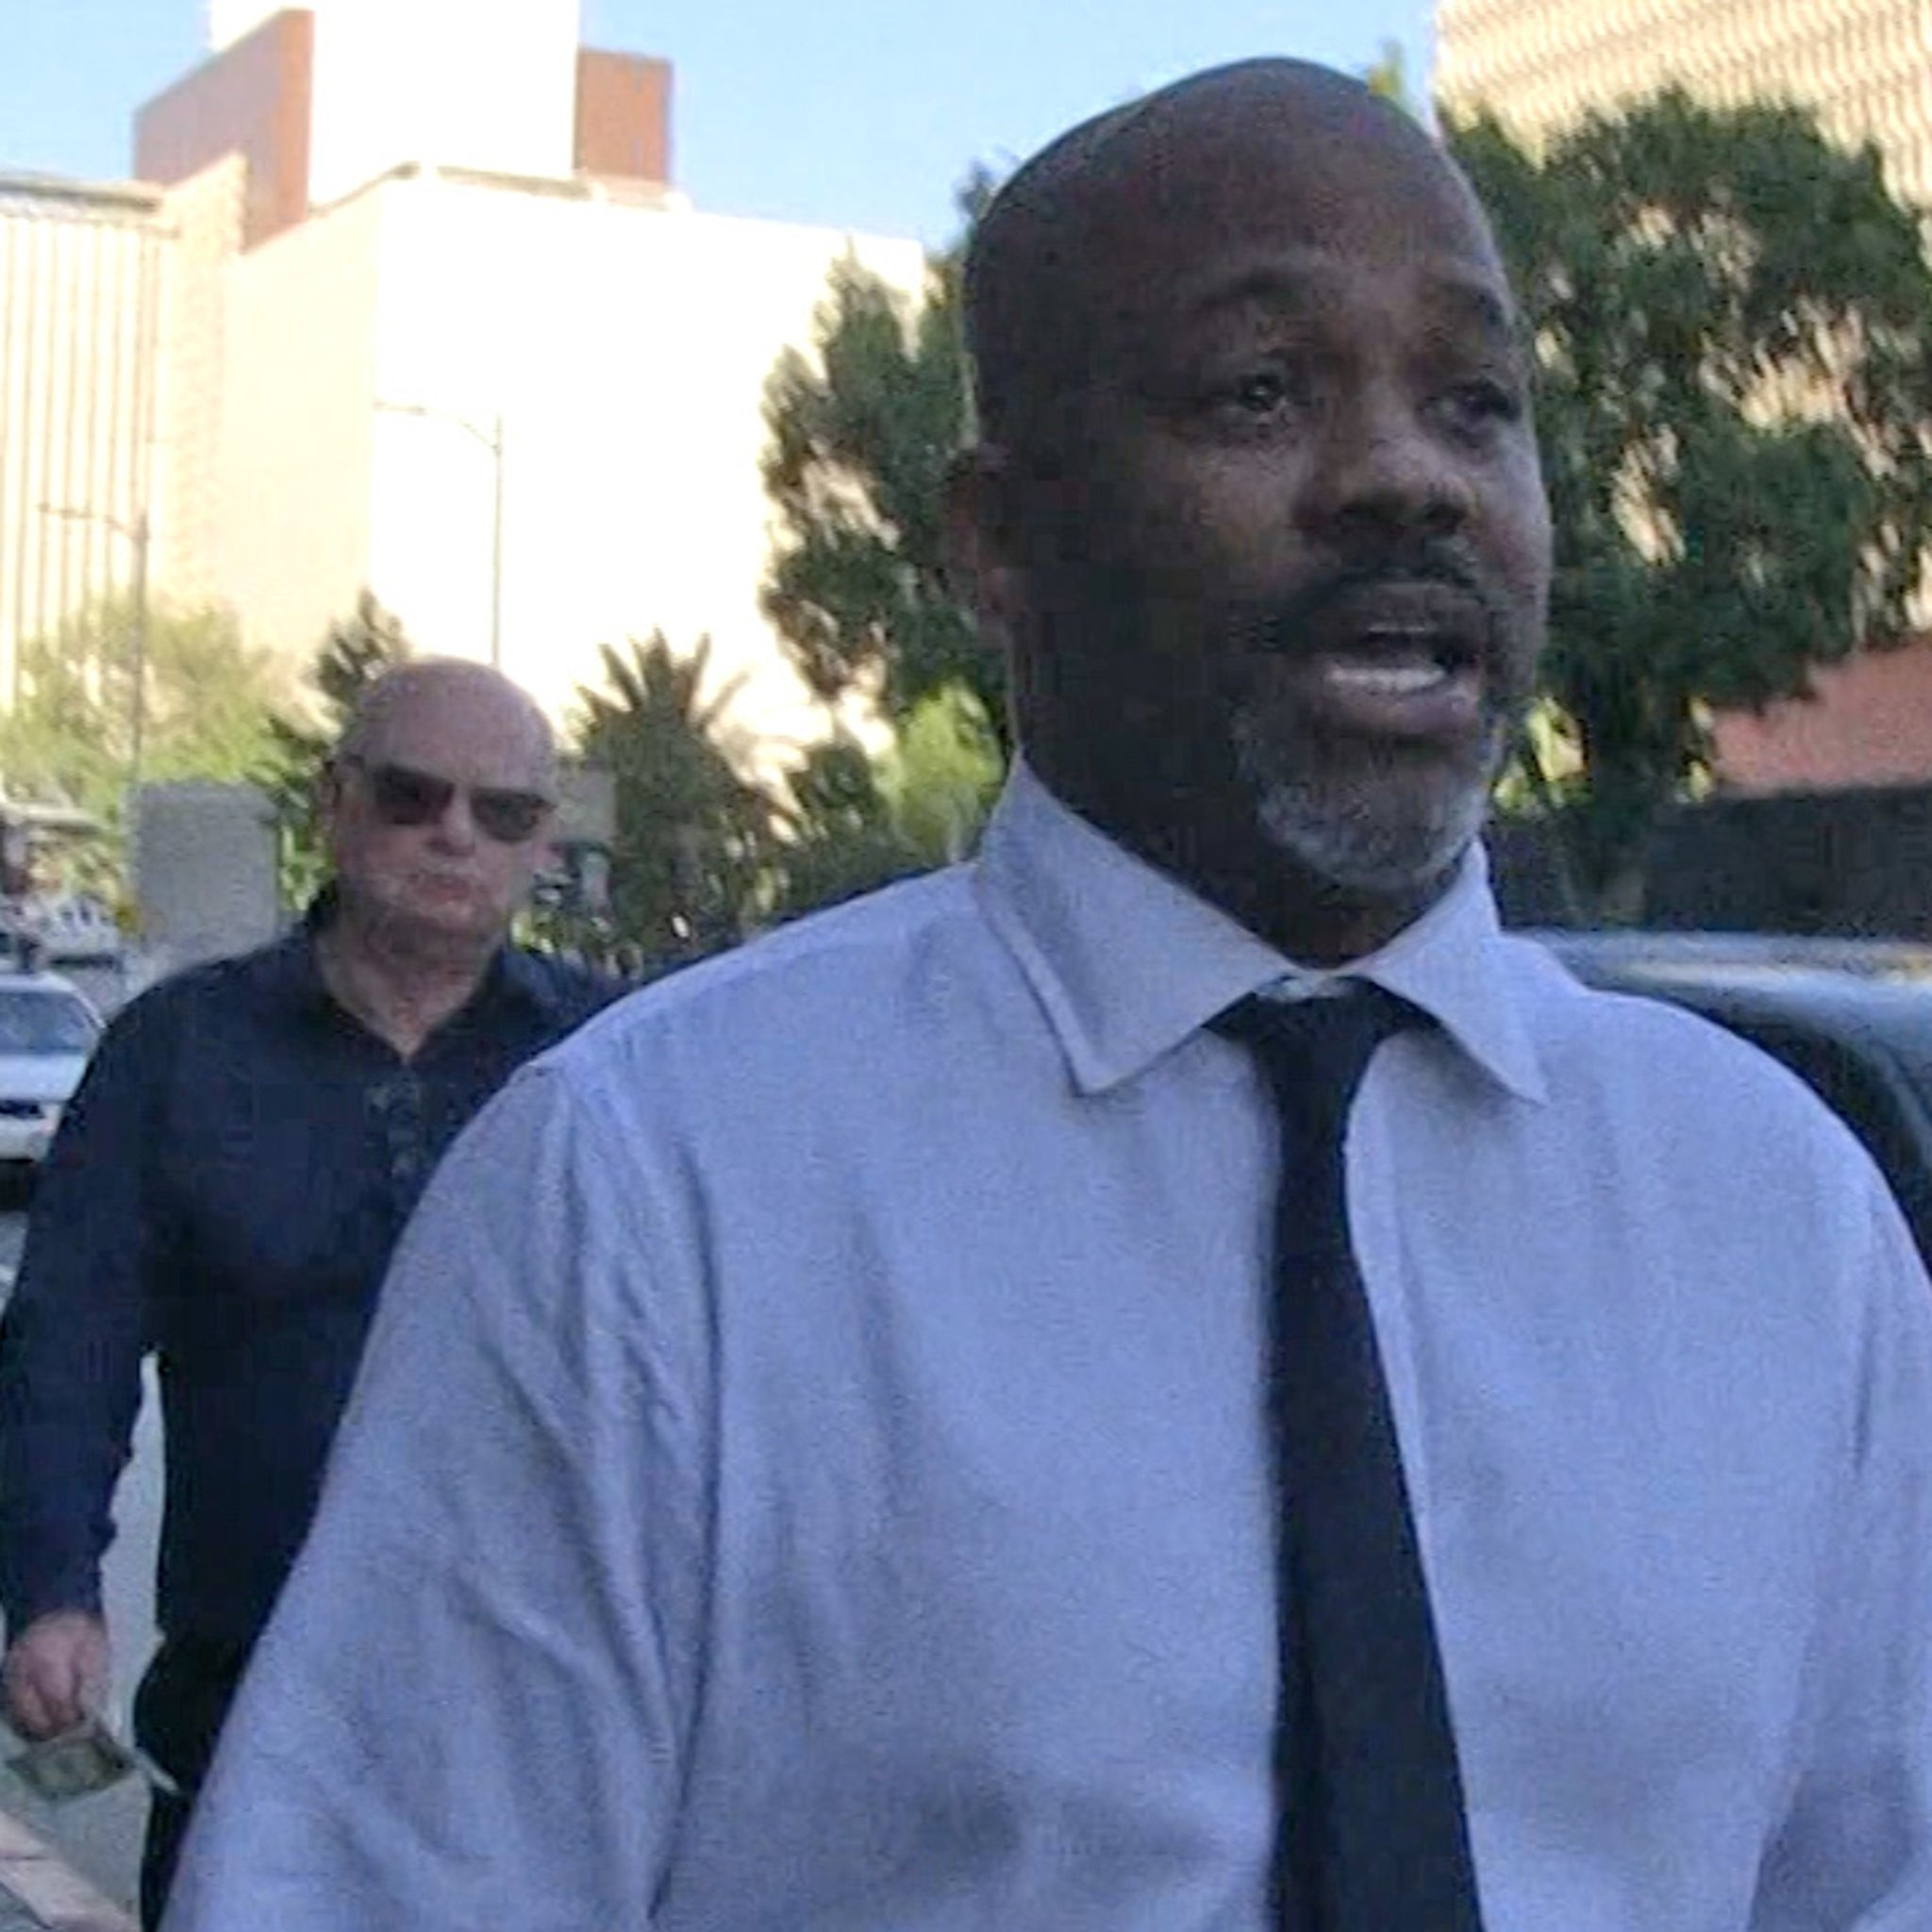 Damon Dash Loses Custody Battle Due to Too Much Weed